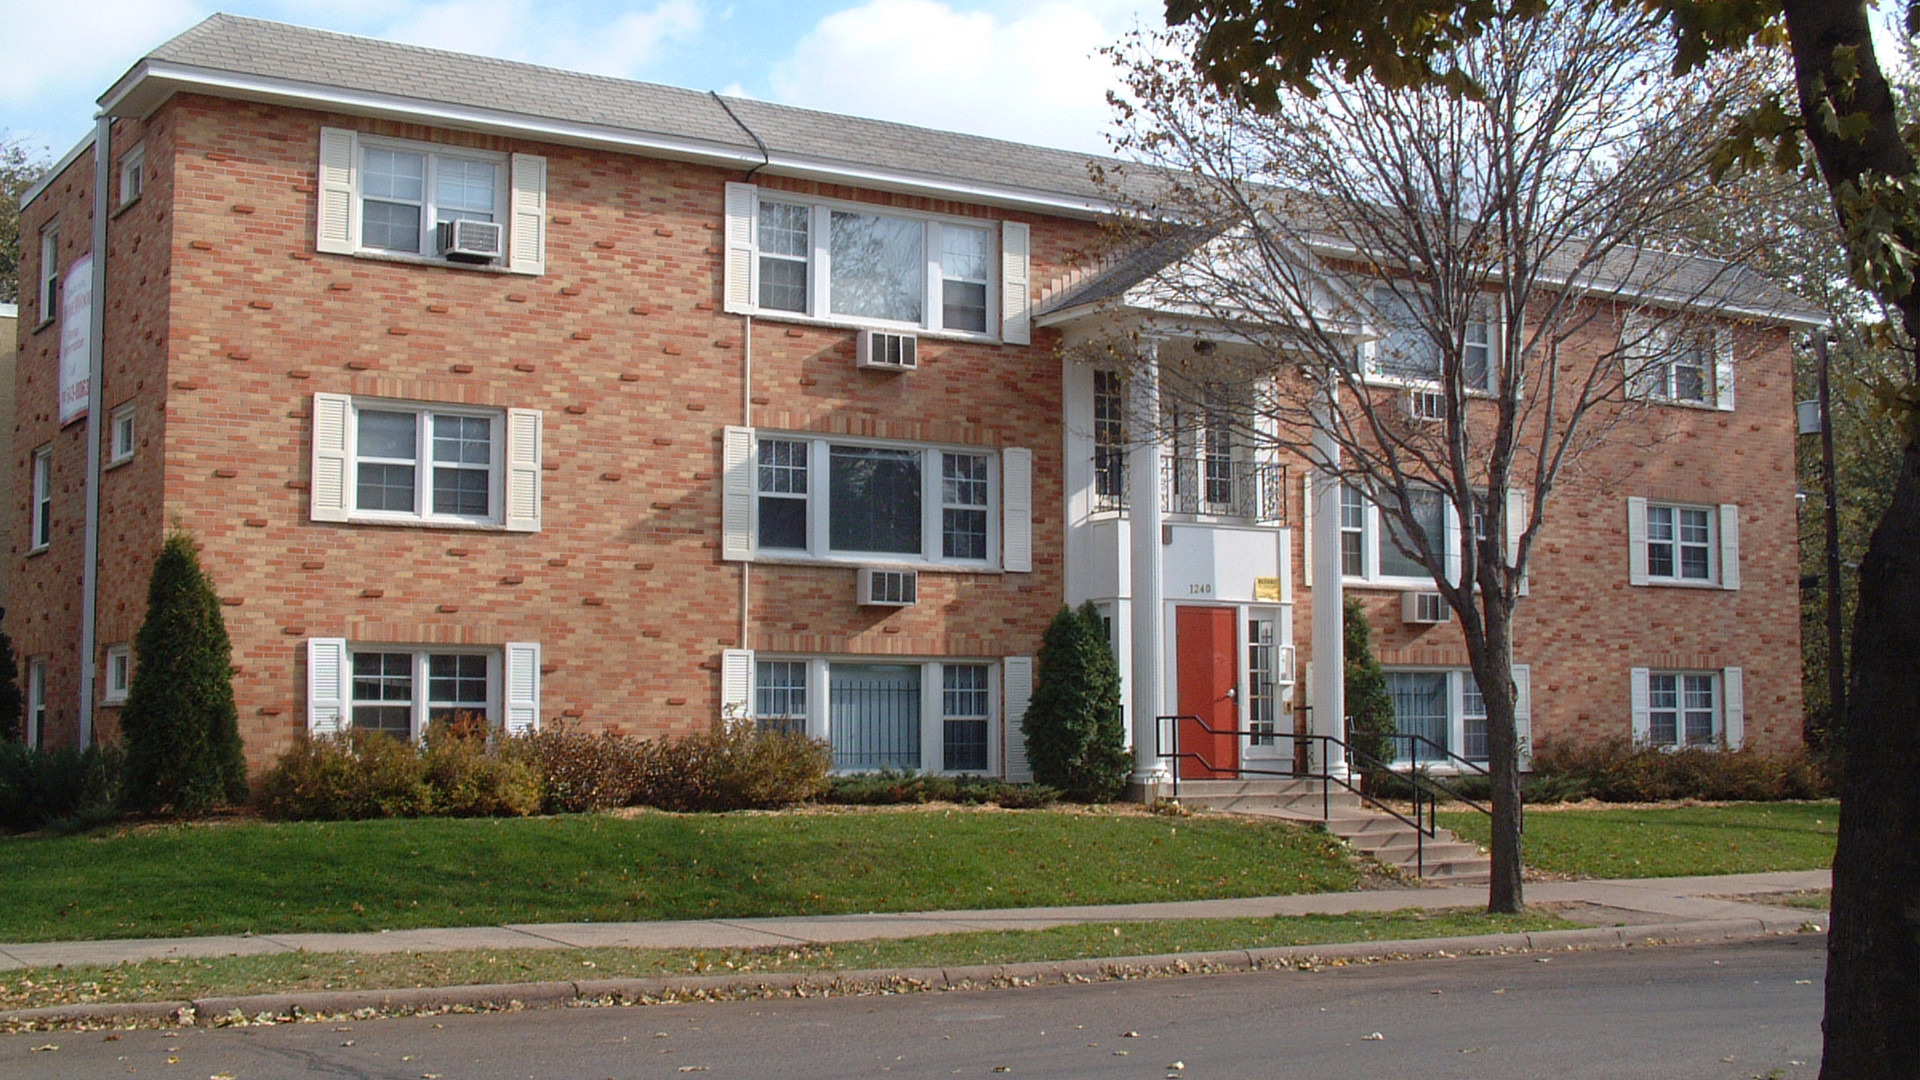 The Homewood Apartments